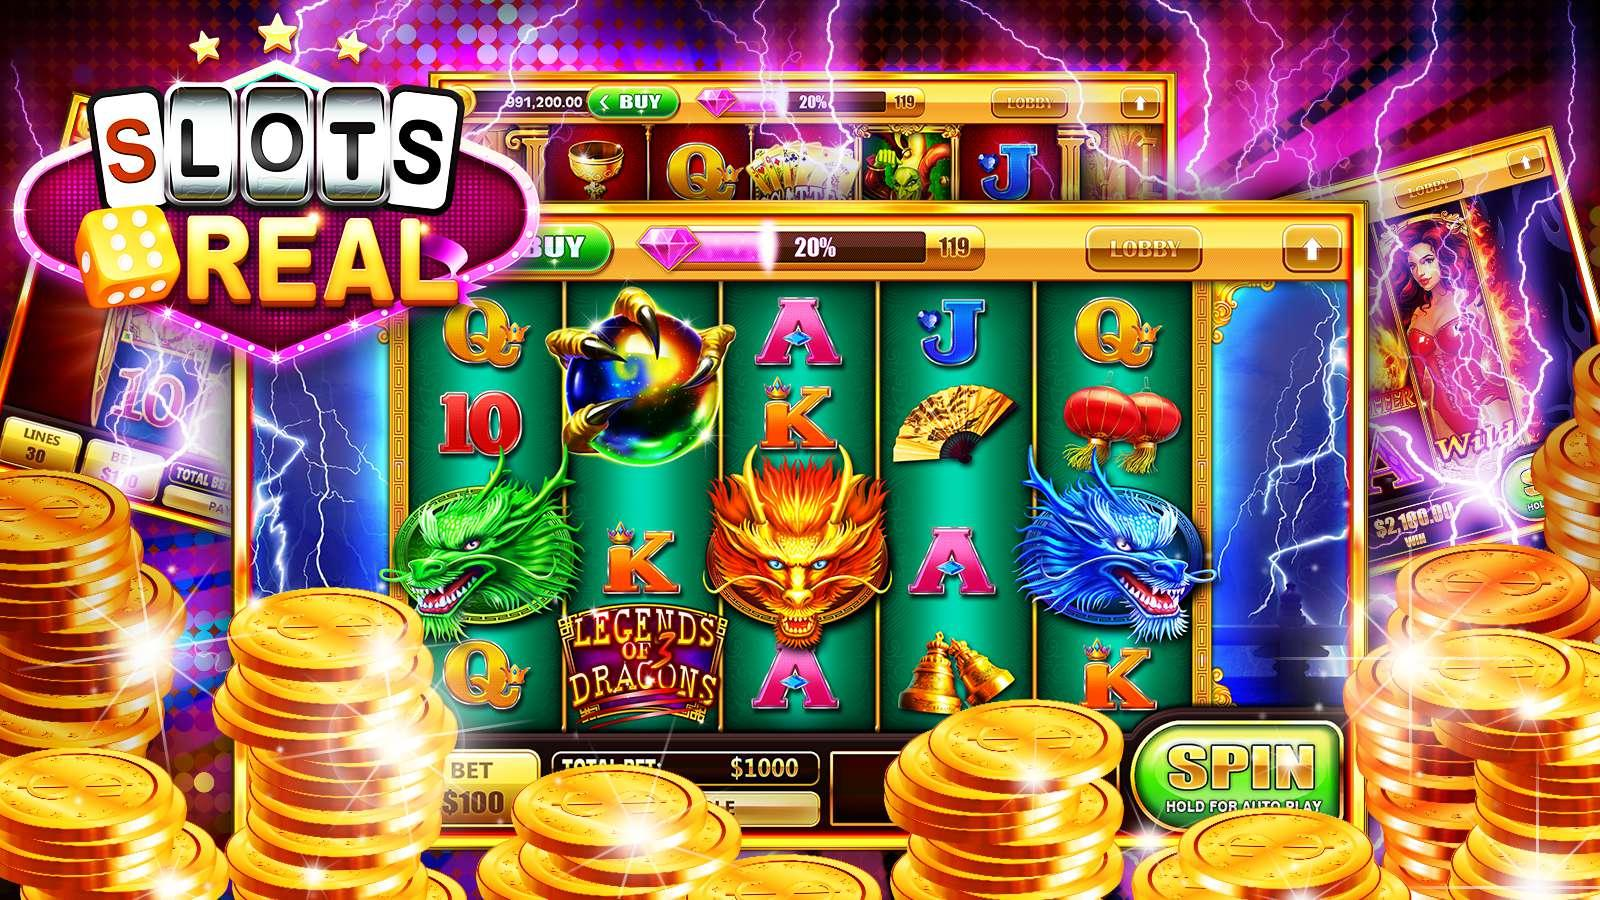 Slot online casino game